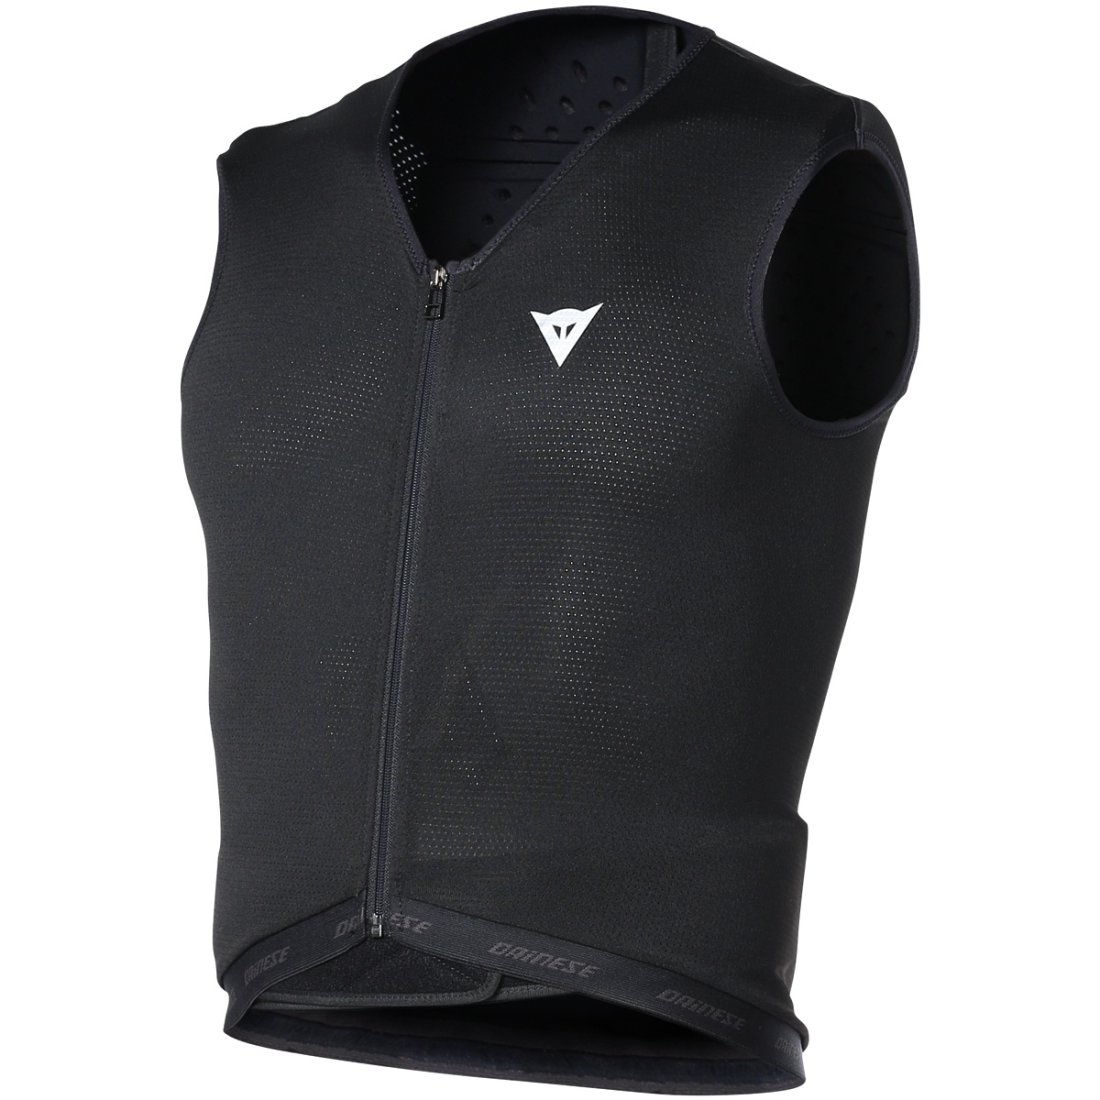 protection dainese spine 1 gilet titanium motocard. Black Bedroom Furniture Sets. Home Design Ideas